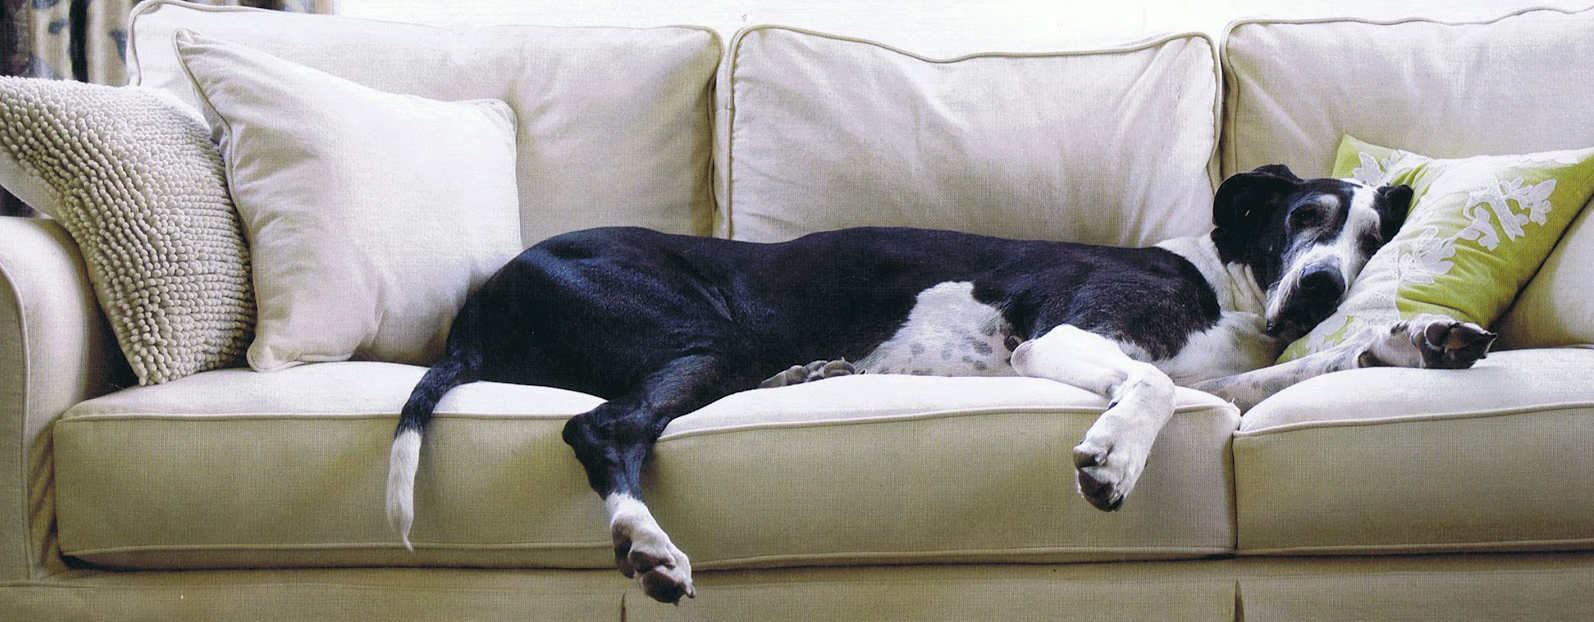 Great Dane on the Couch